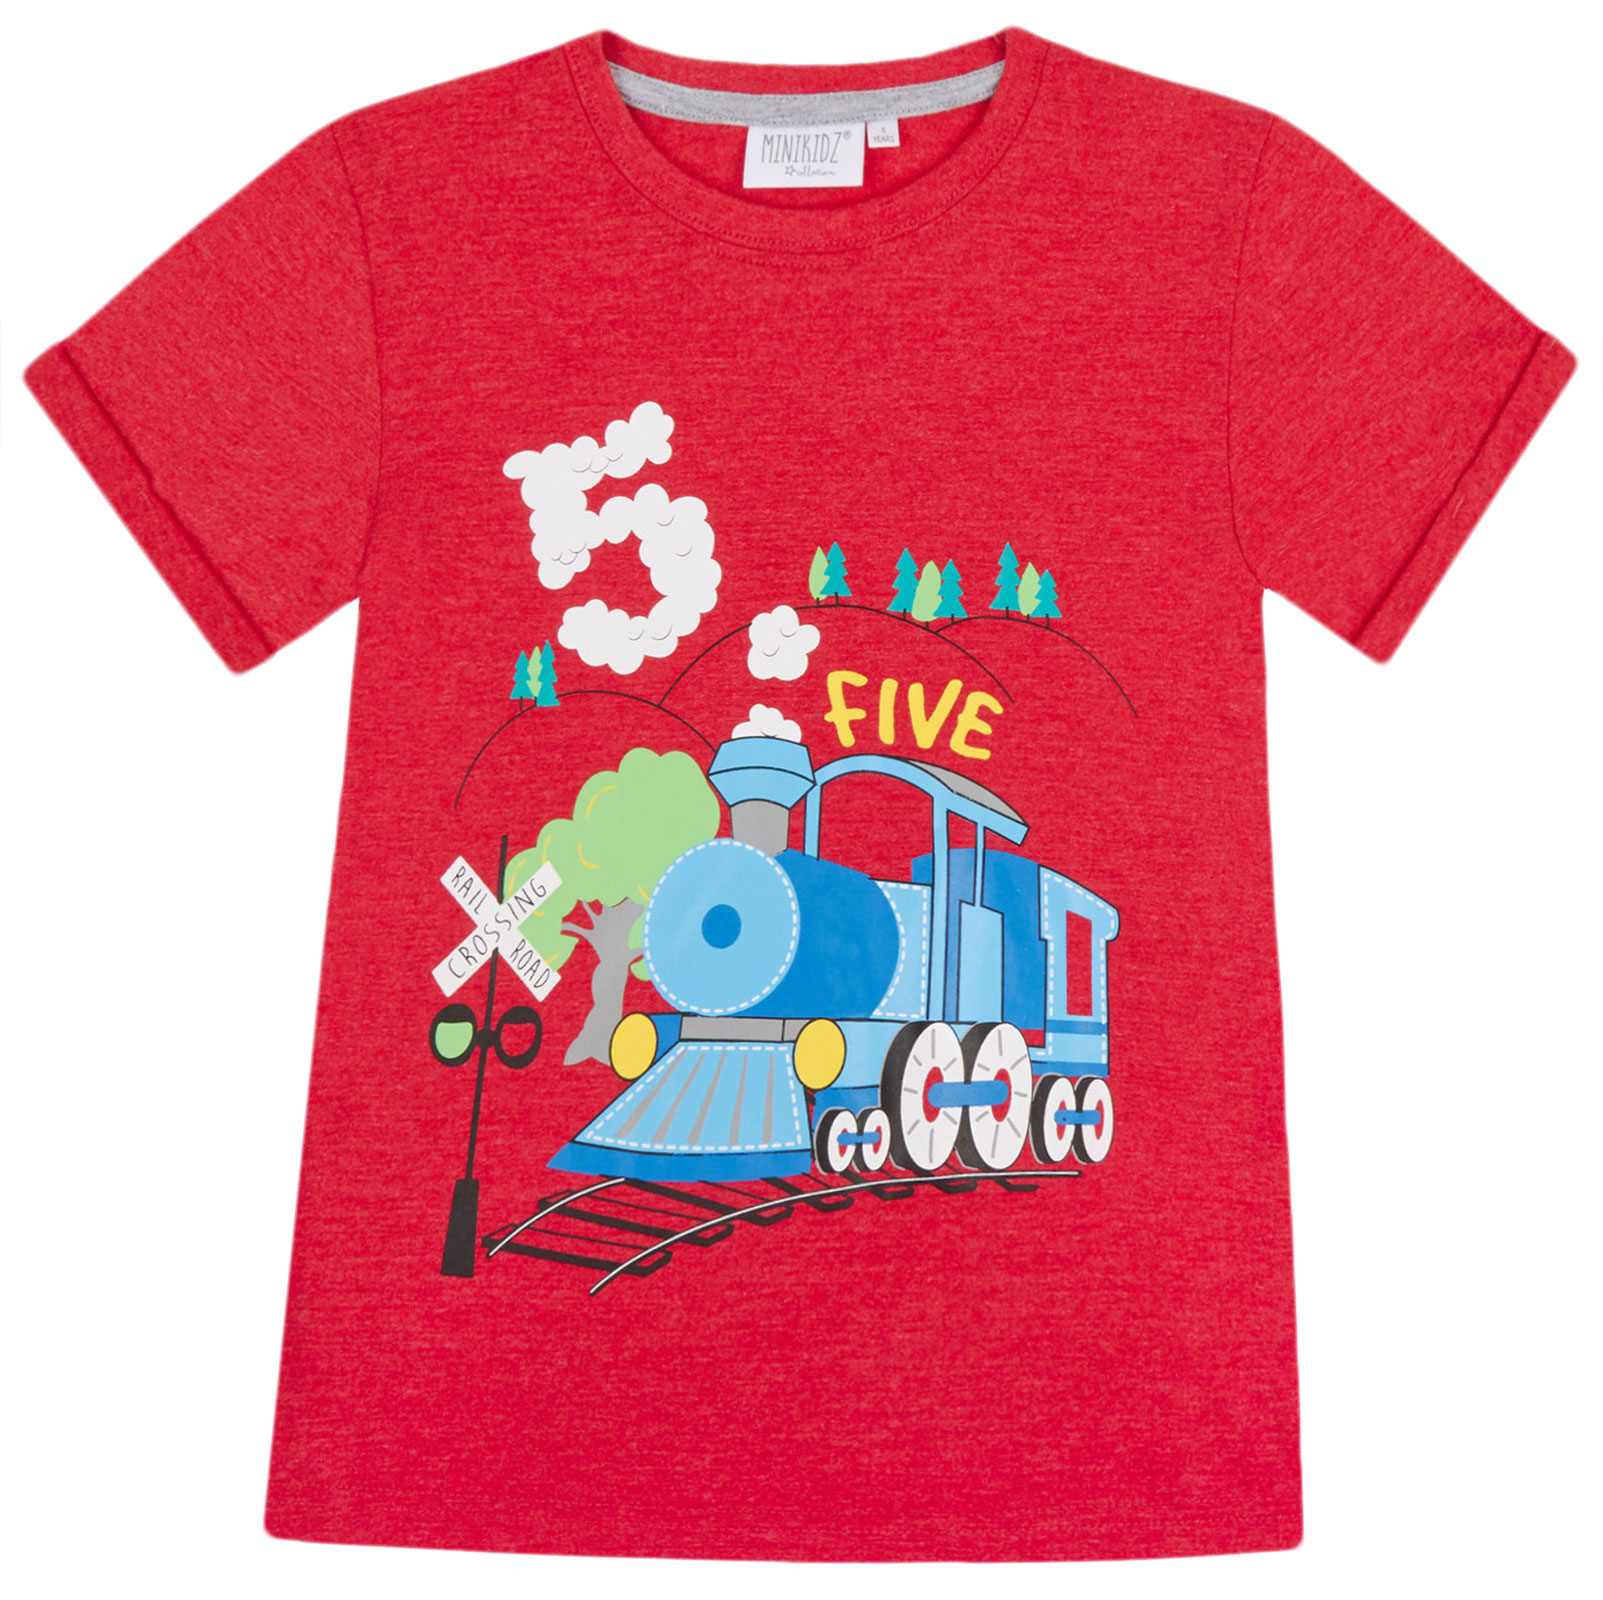 Boys-Birthday-I-Am-1-2-3-4-5-6-Years-Top-Kids-New-Age-Number-Birthday-T-Shirt thumbnail 5